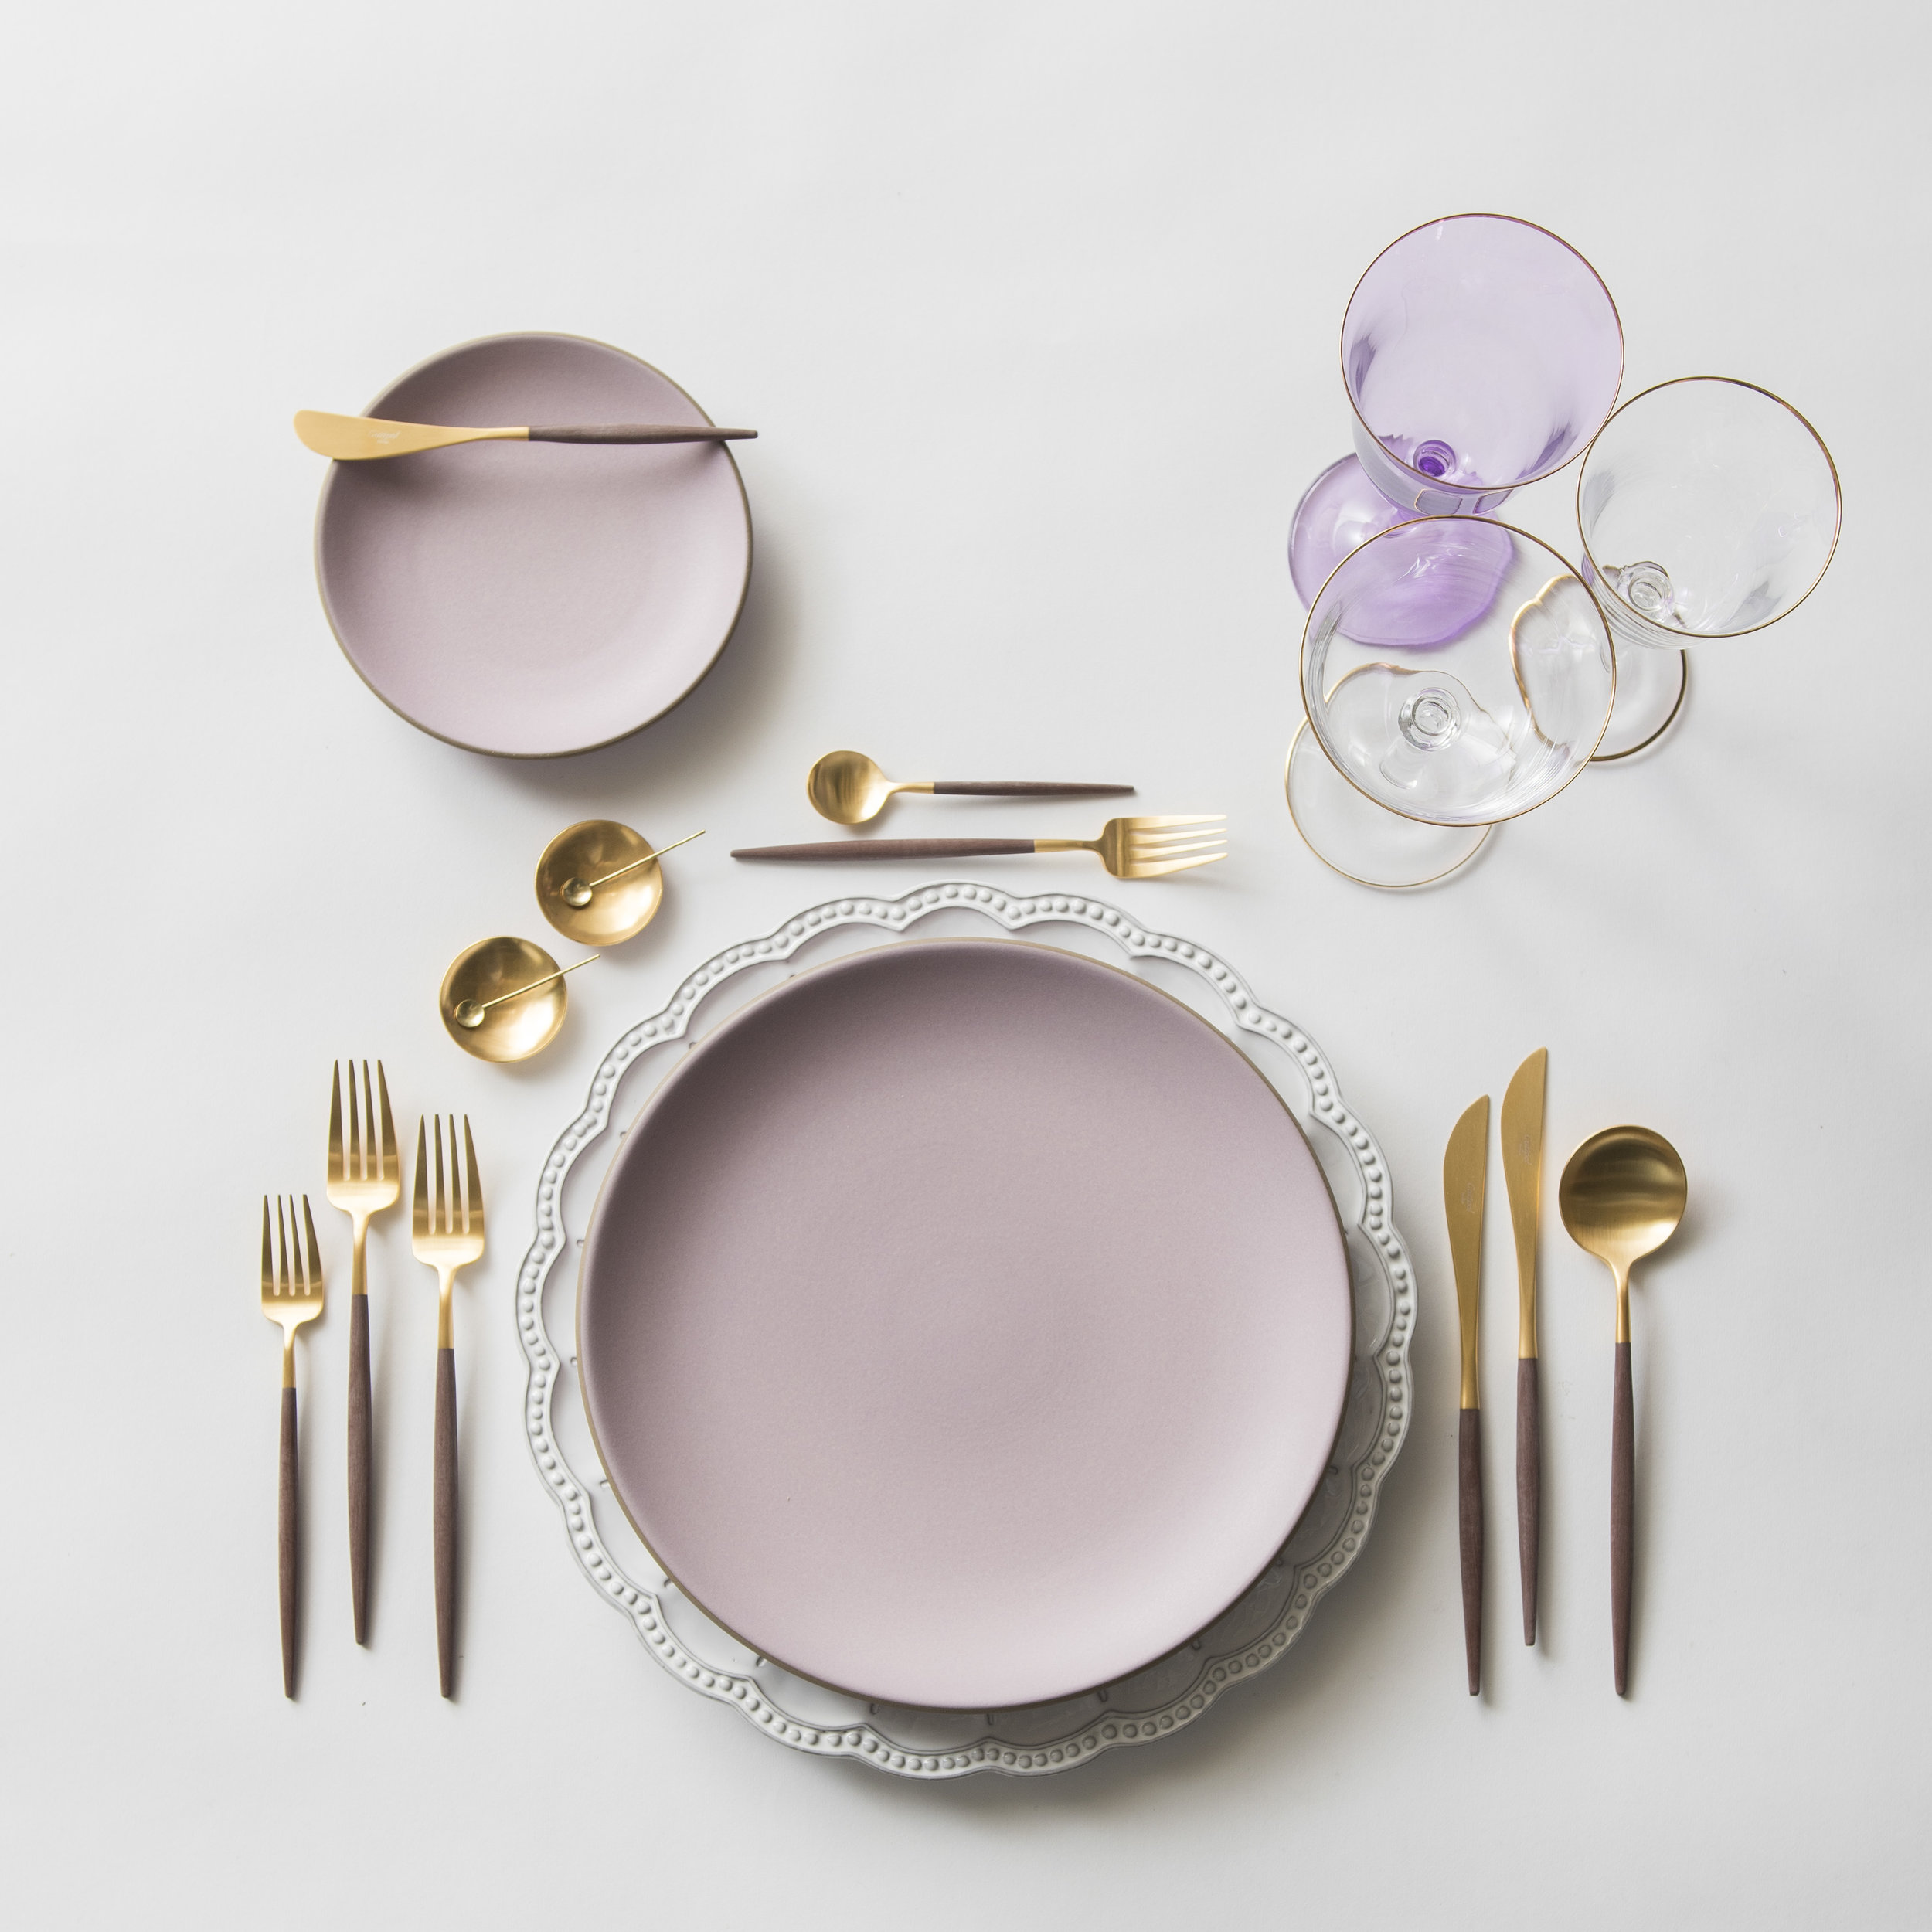 RENT: Signature Collection Chargers + Custom Heath Ceramics in Wildflower + Goa Flatware in Brushed 24k Gold/Wood + Chloe 24k Gold Rimmed Stemware + Chloe 24k Gold Rimmed Goblet in Lilac + 14k Gold Salt Cellars + Tiny Gold Spoons   SHOP: Goa Flatware in Brushed 24k Gold/Wood + Chloe 24k Gold Rimmed Stemware + 14k Gold Salt Cellars + Tiny Gold Spoons